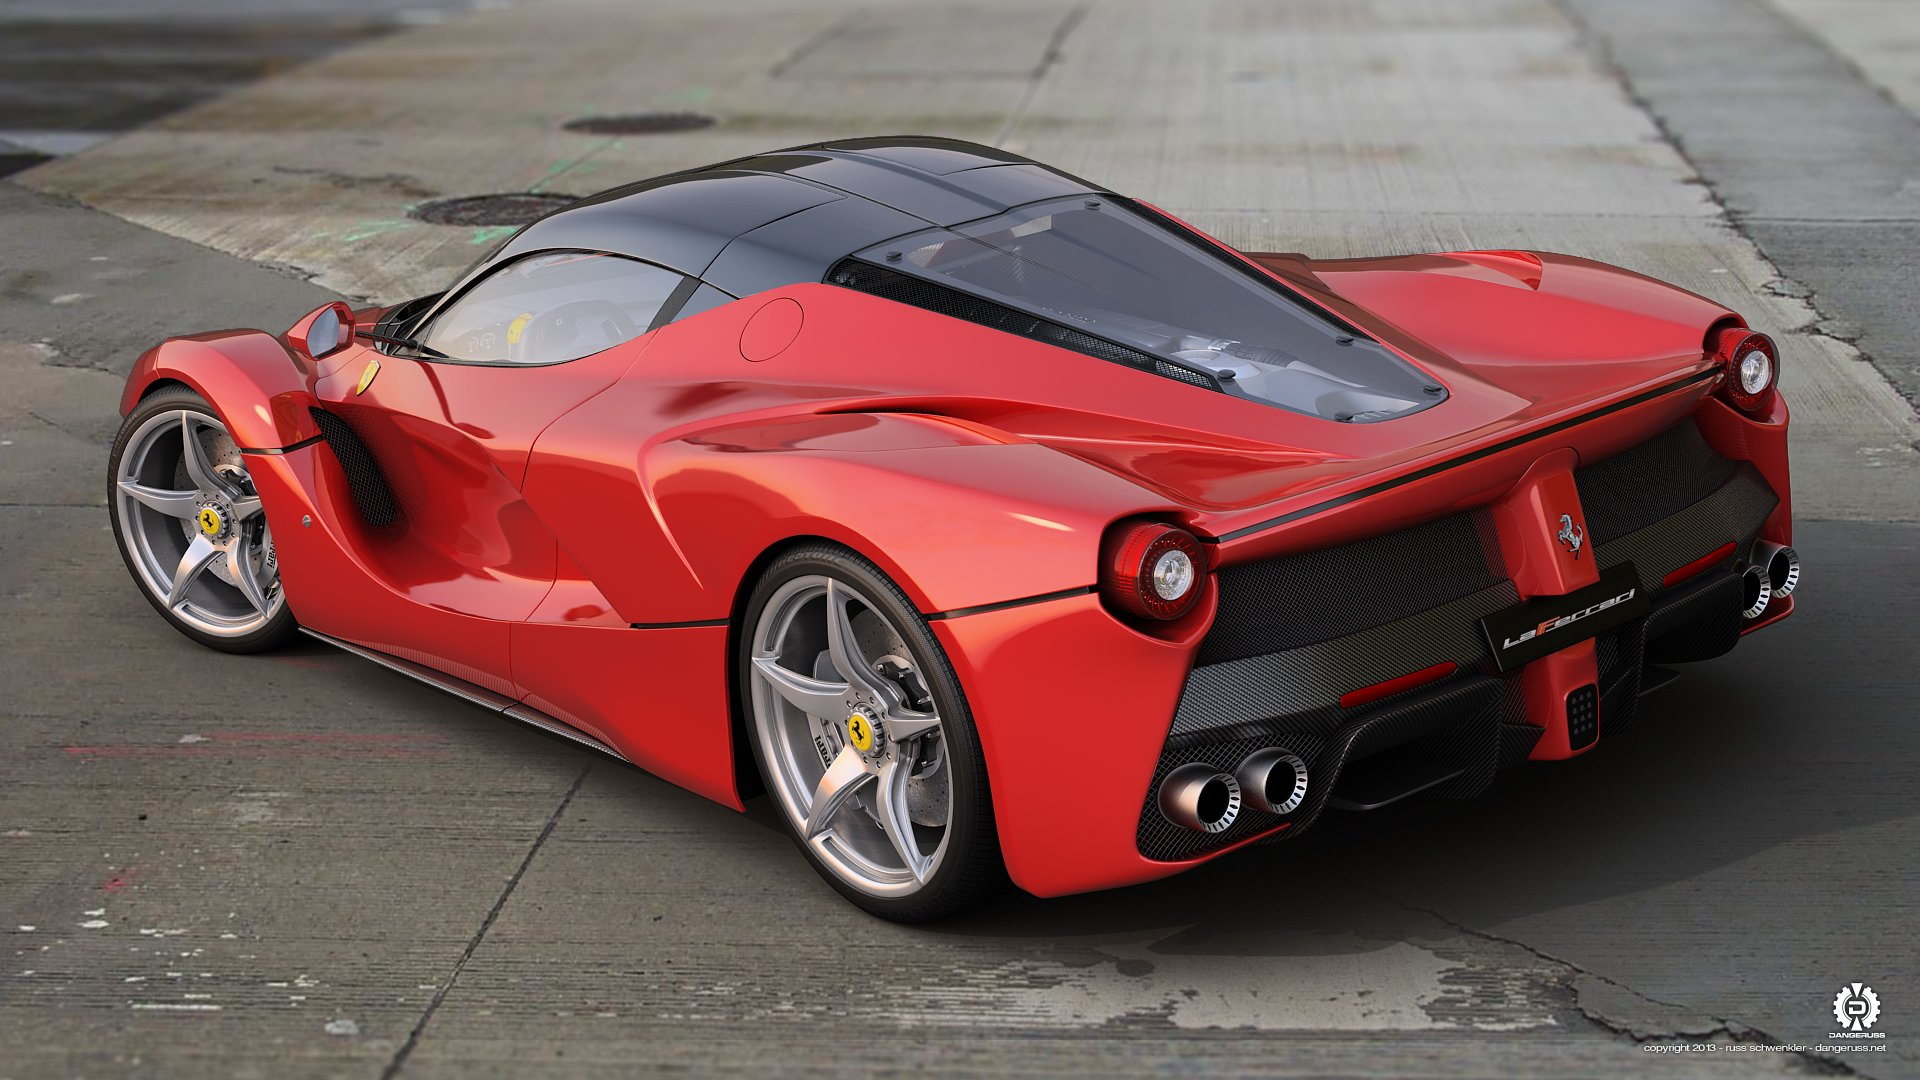 laferrari rear perspective wallpaper 1920x1080 617203 wallpaperup. Black Bedroom Furniture Sets. Home Design Ideas